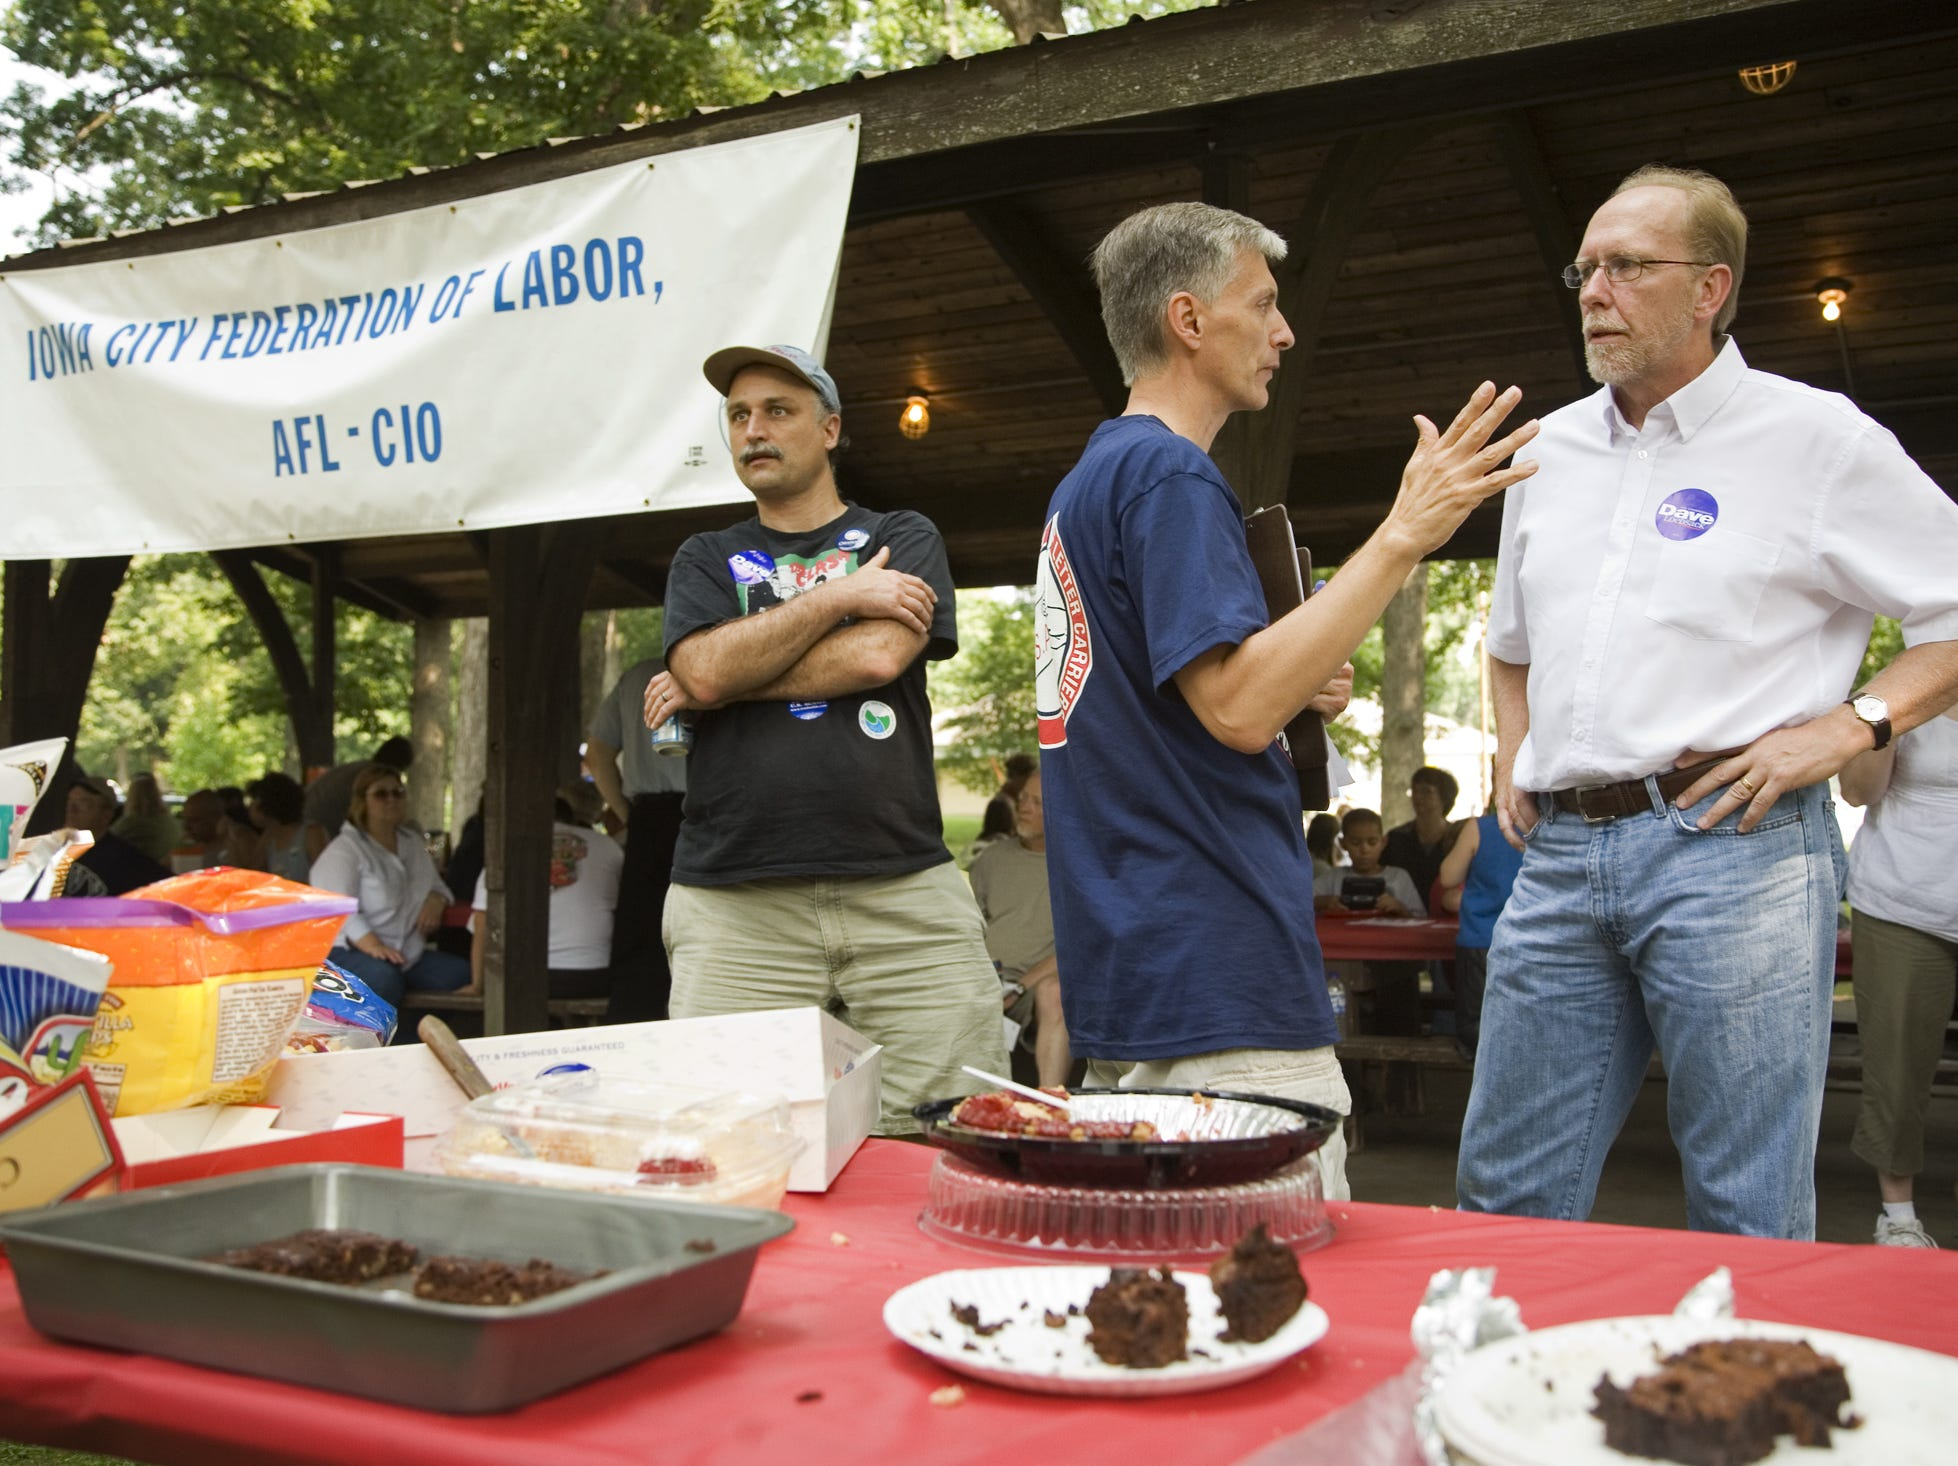 Rep. Dave Loebsack, D-Iowa (right) talks to Jim Beach at the Iowa City Federation of Labor's, Labor Day picnic at City Park in Iowa City, Iowa, on Sept. 1, 2008.